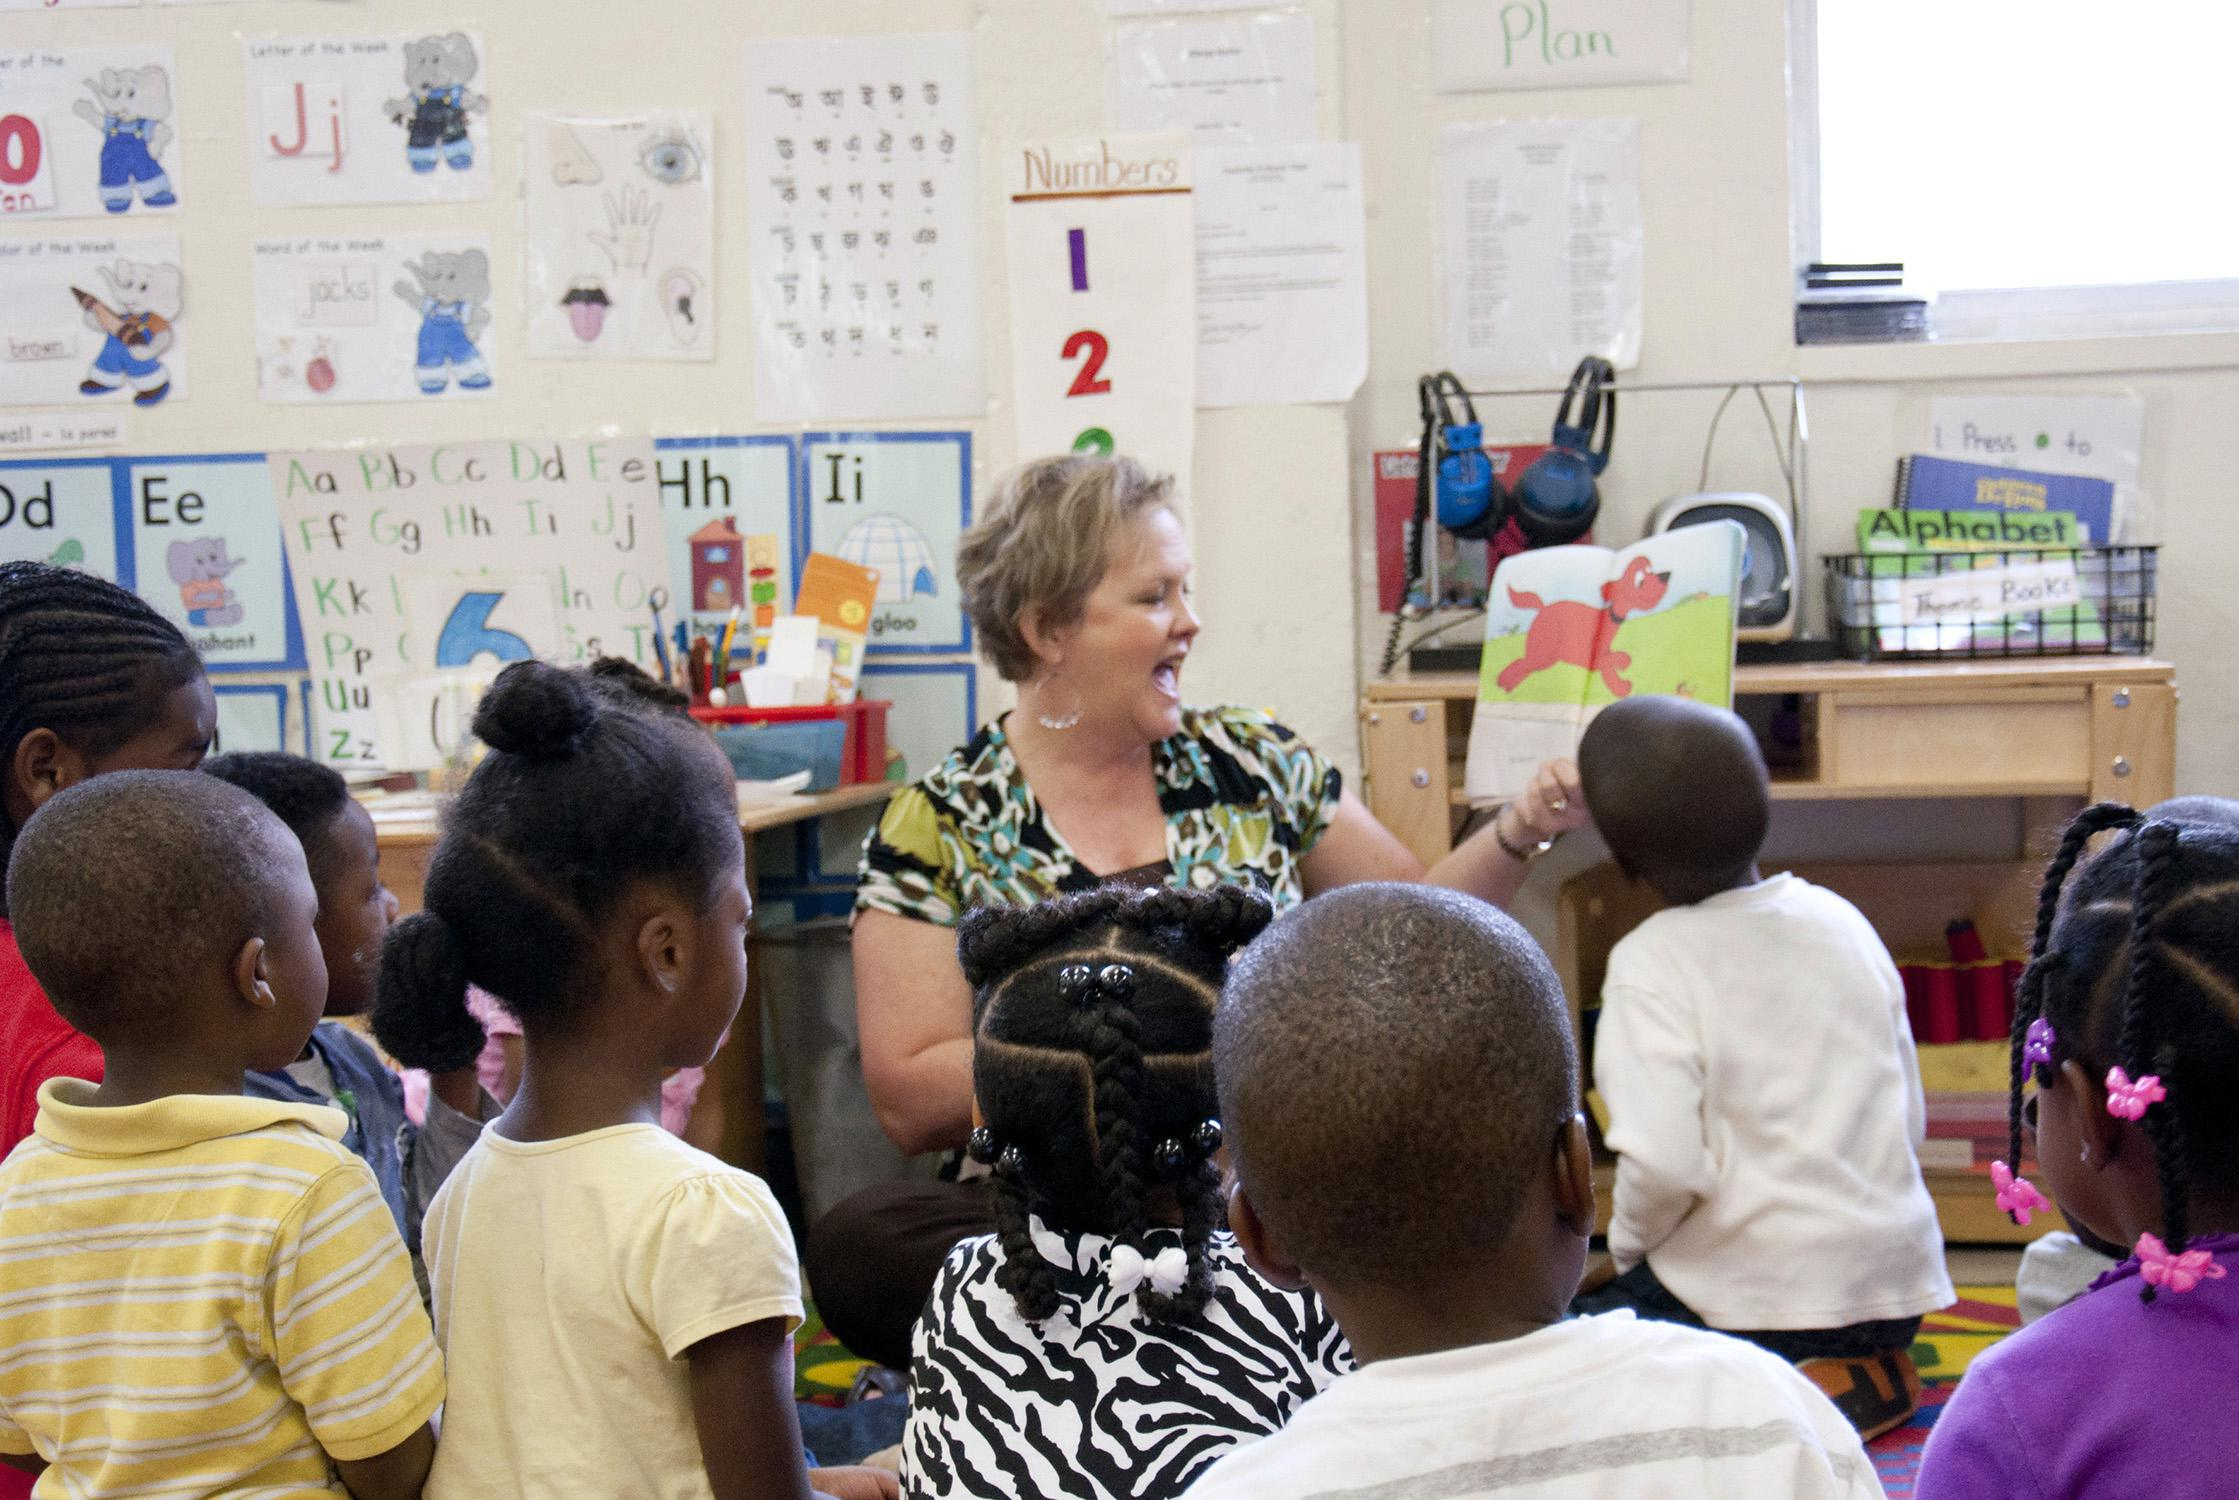 Melissa Tenhet, project director for the Mississippi Child Care Resource and Referral Network shares a story with the preschool students at the Brickfire Project after completing literacy pre-assessments through Starkville Rotary's community service project. (Photo by MSU Extension Service/Alicia Barnes)